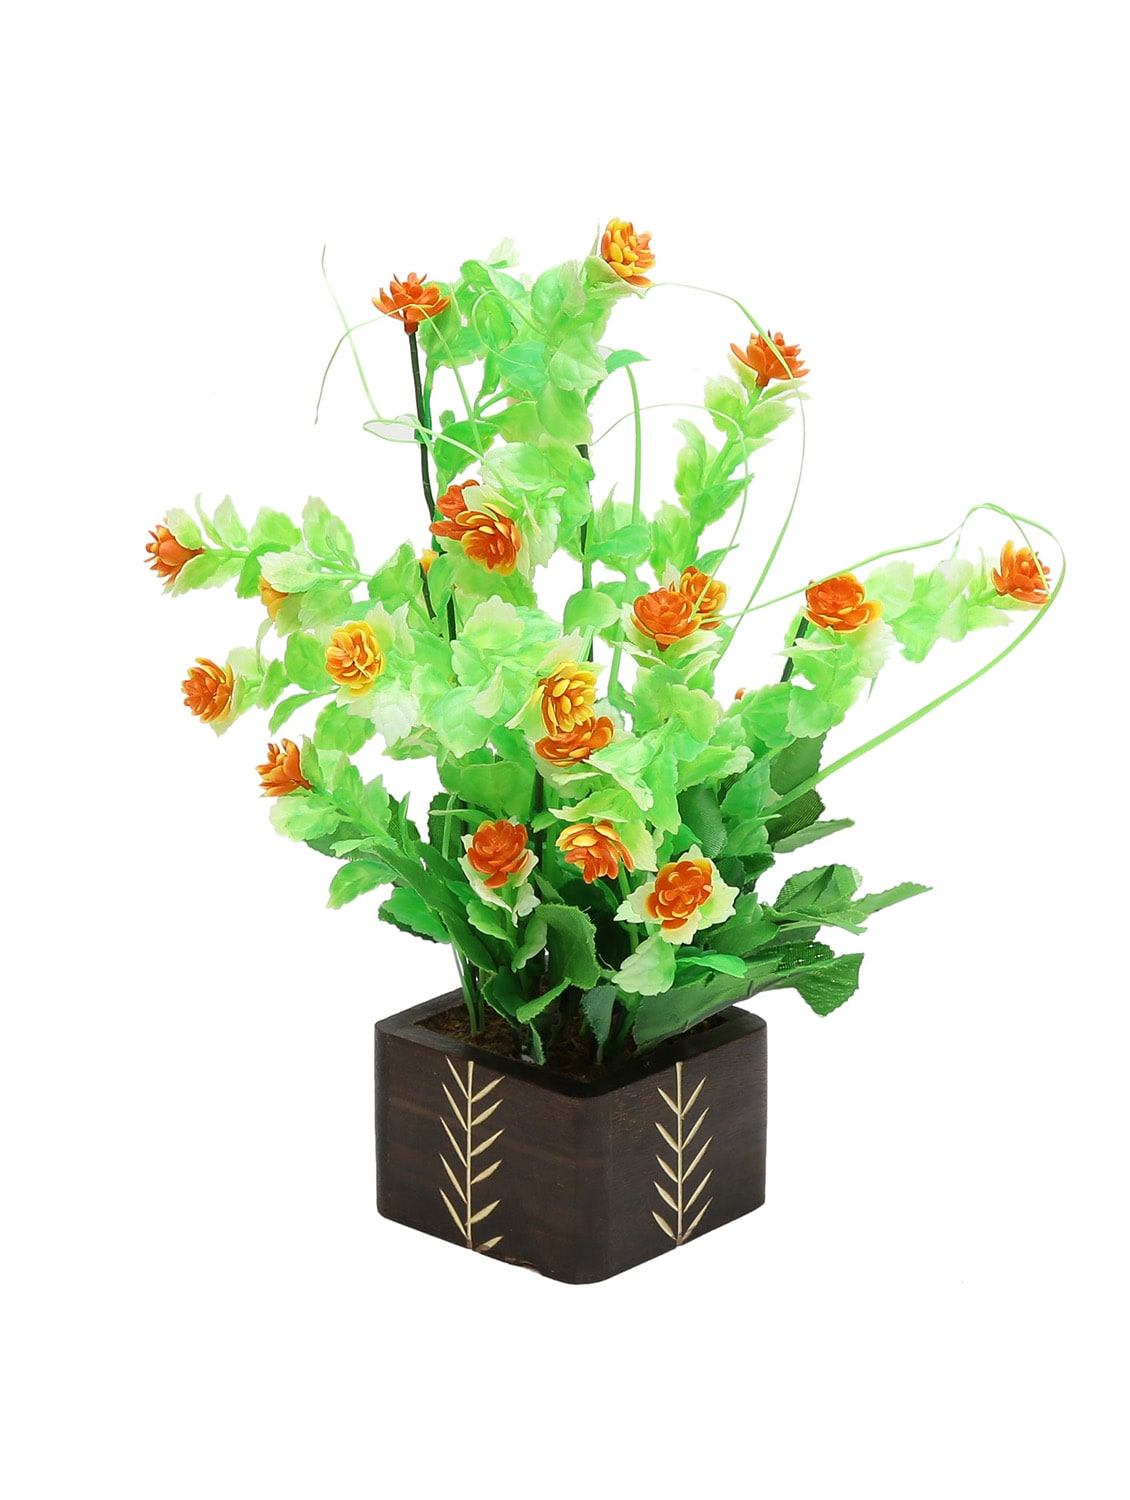 Random Artificial Potted Plant With Small Orange Flowers 12818960 Zoom Image 1